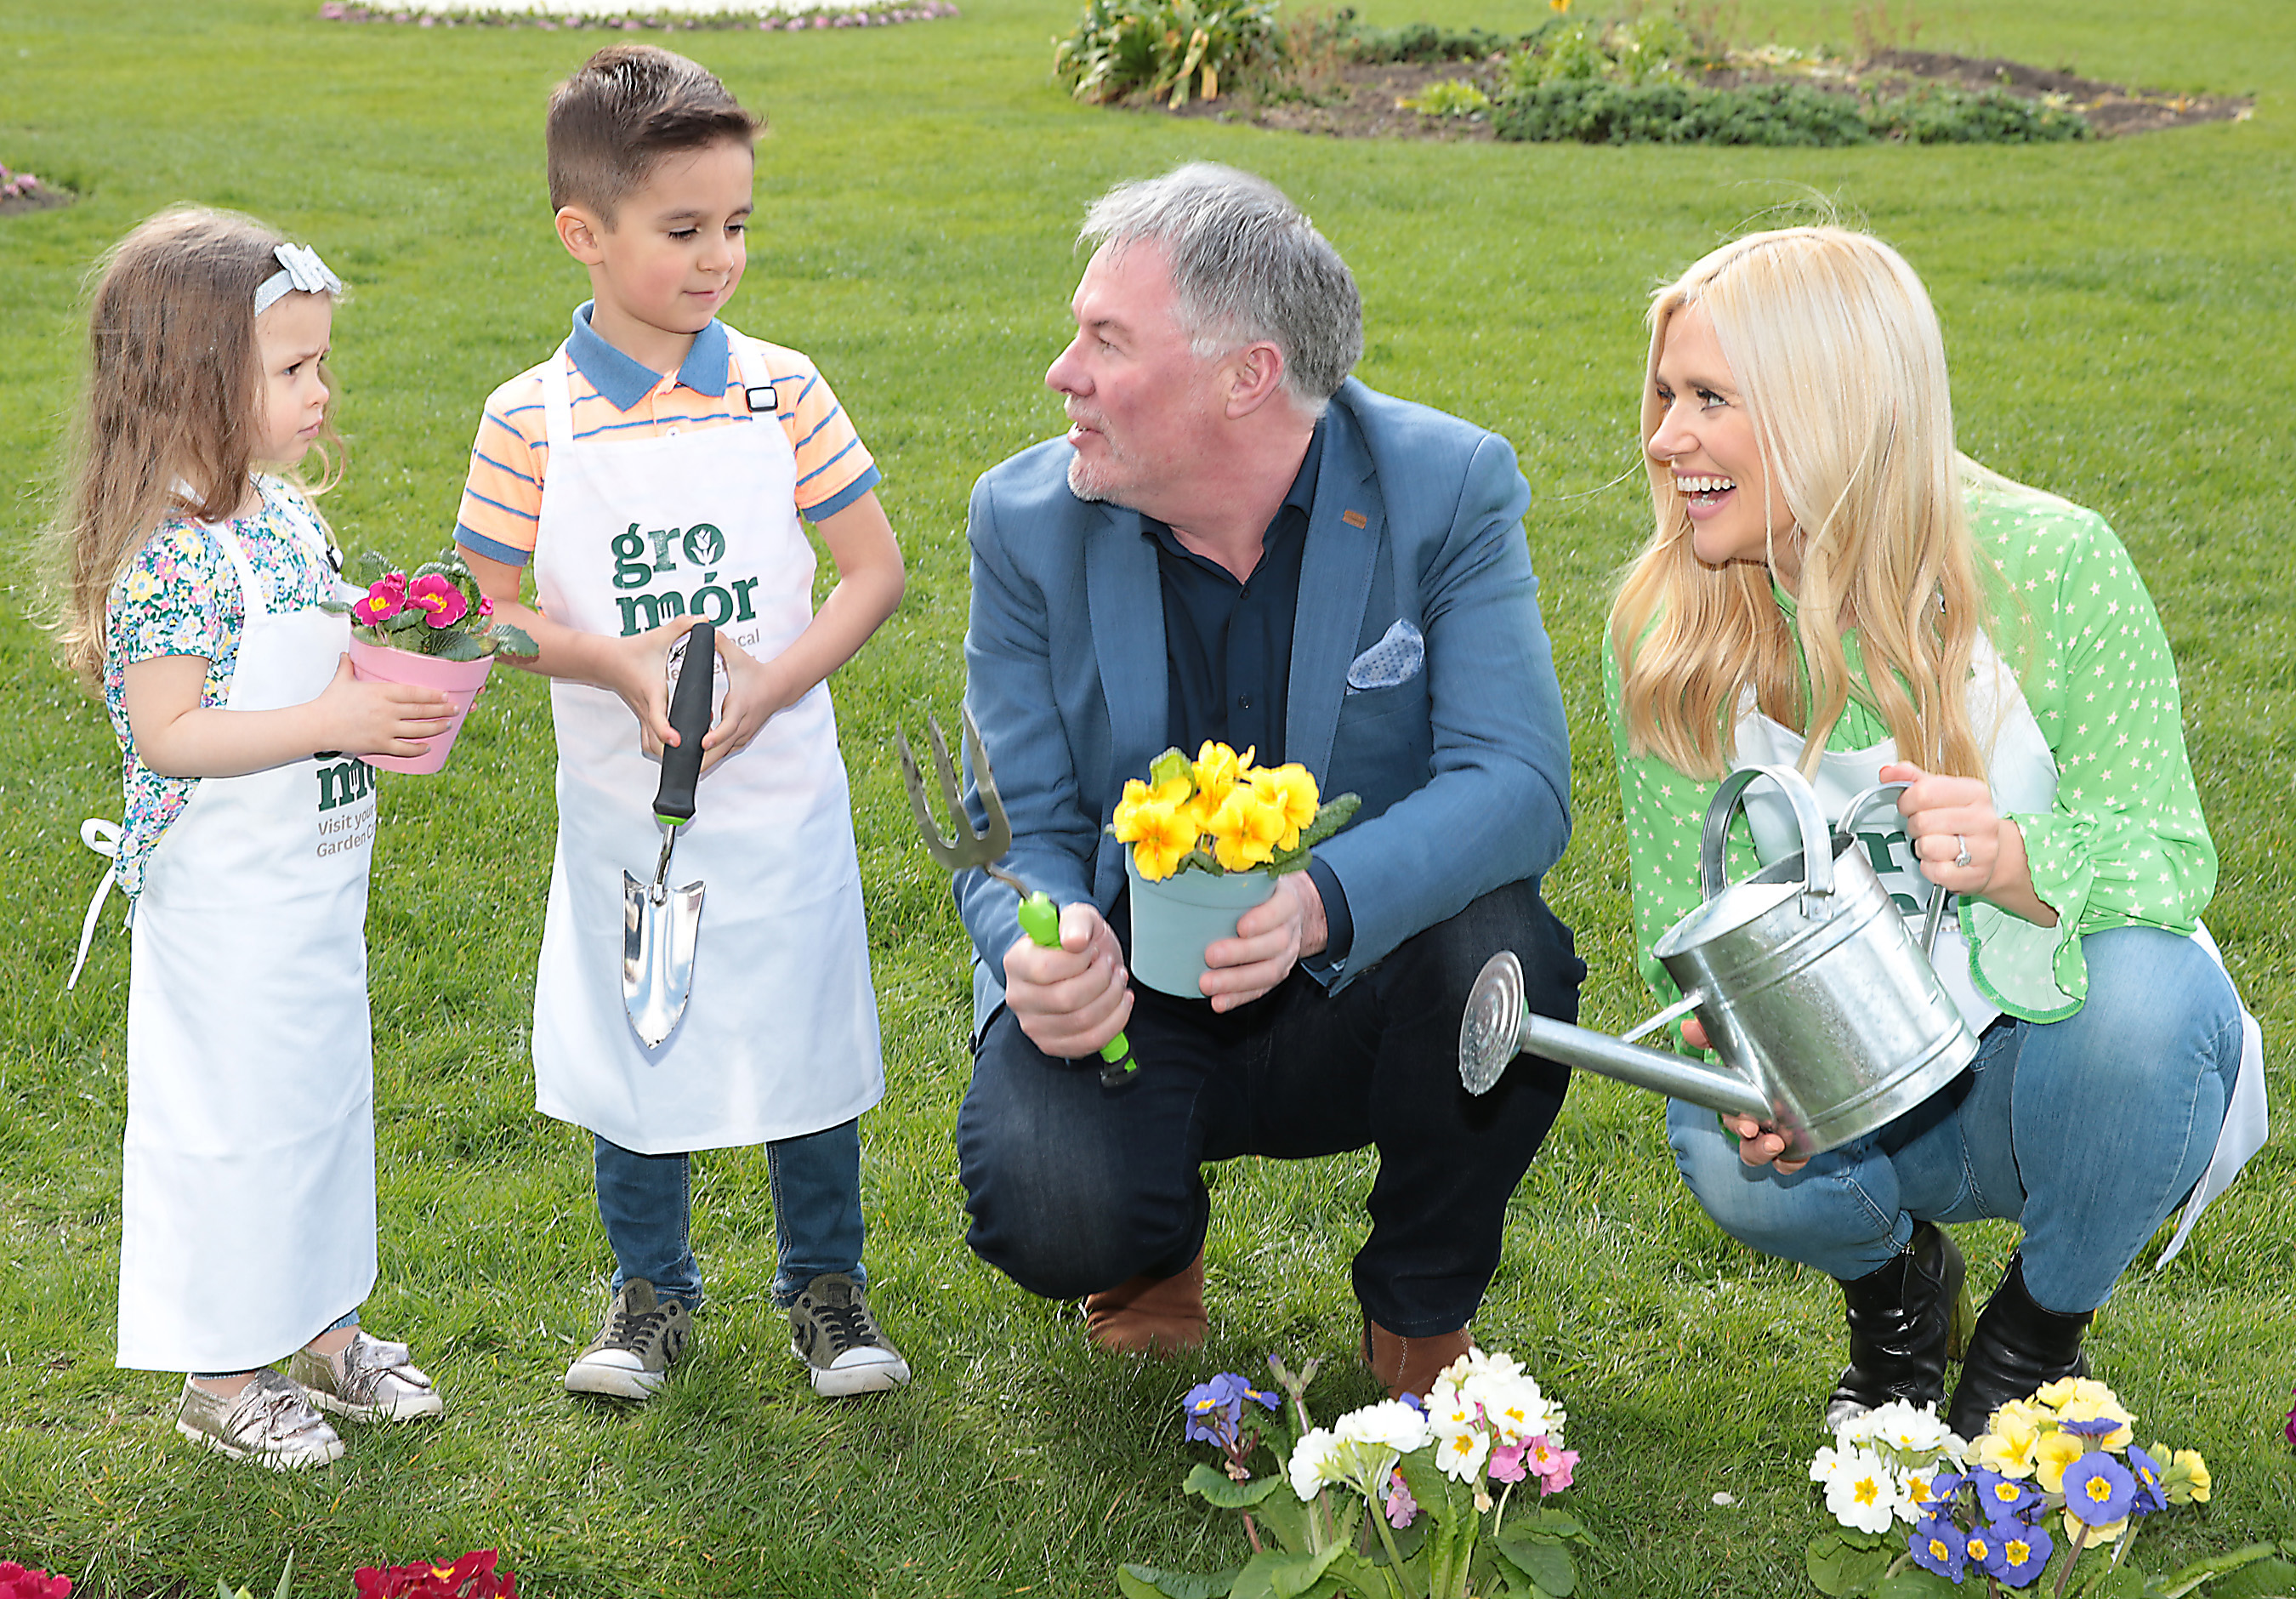 Super Garden Judge Gary Graham and TV personality Karen Koster Launch GroMór 2019